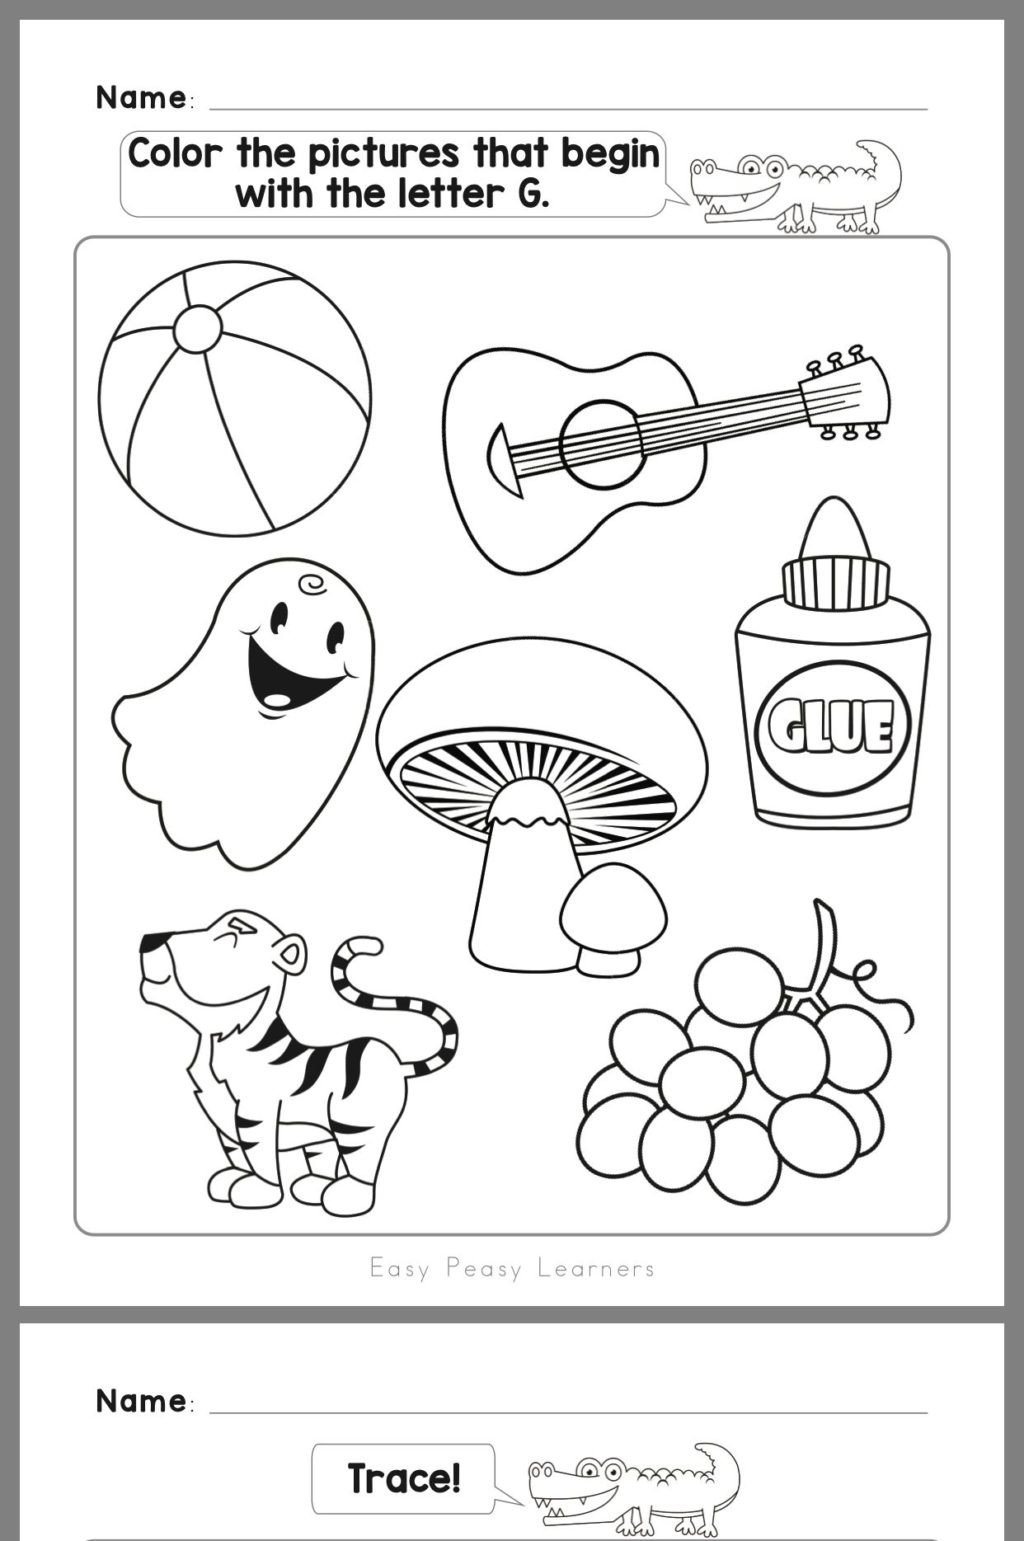 kindergarten worksheets first grade printable reading activities for 1st math word problems with solutions and 1024x1541